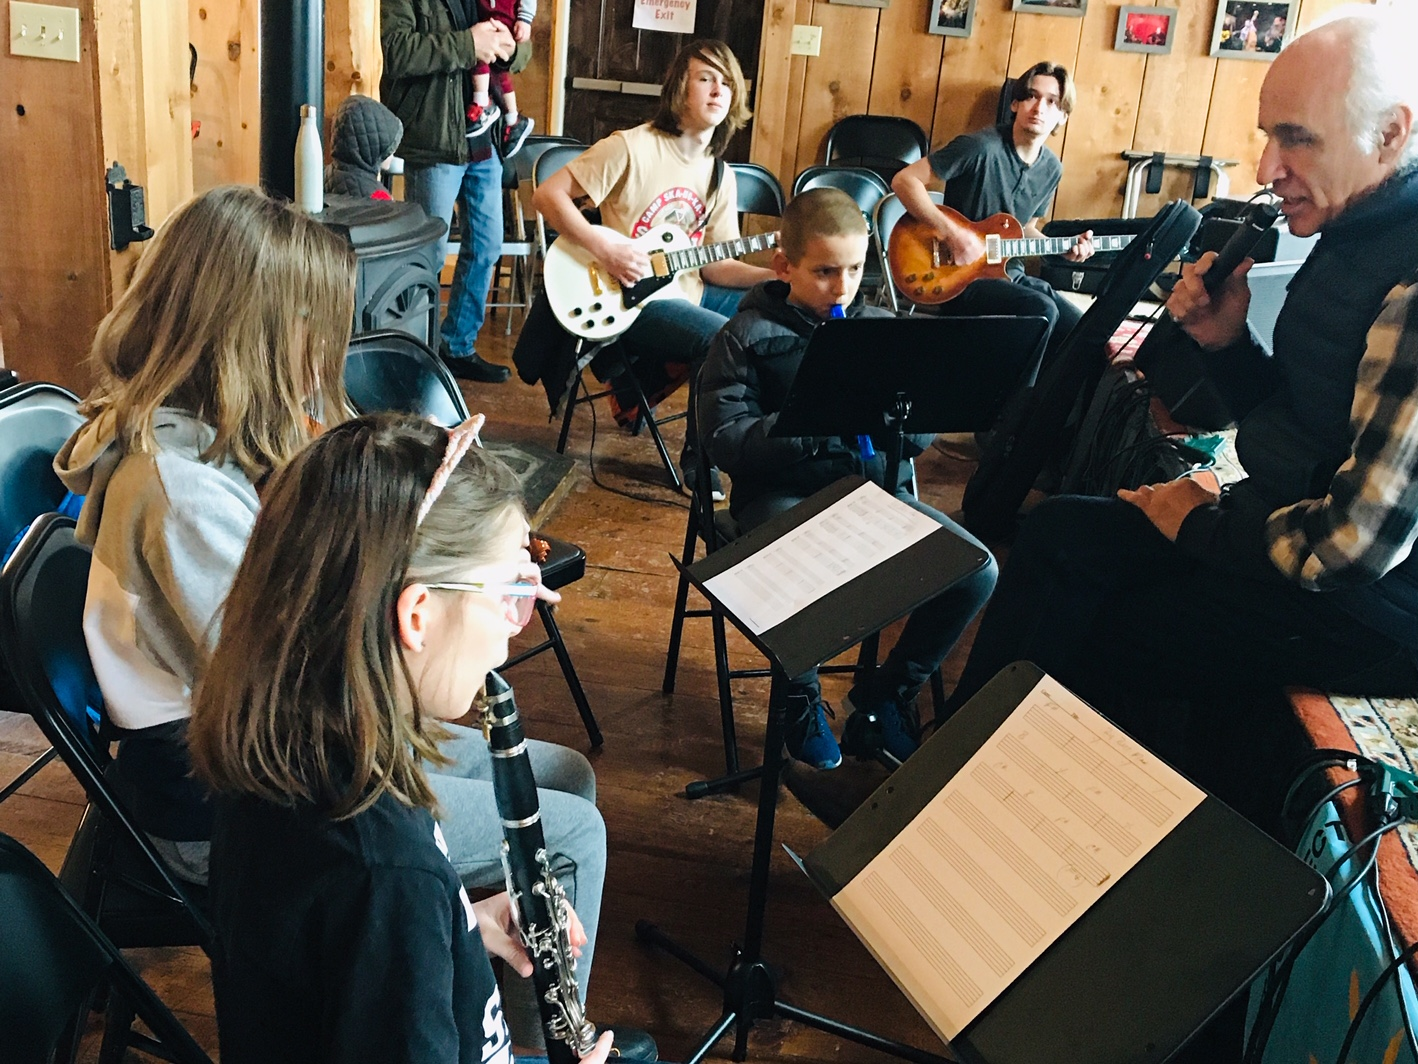 SAMF Joins Blues Society of Western New York to support youth musical mentoring